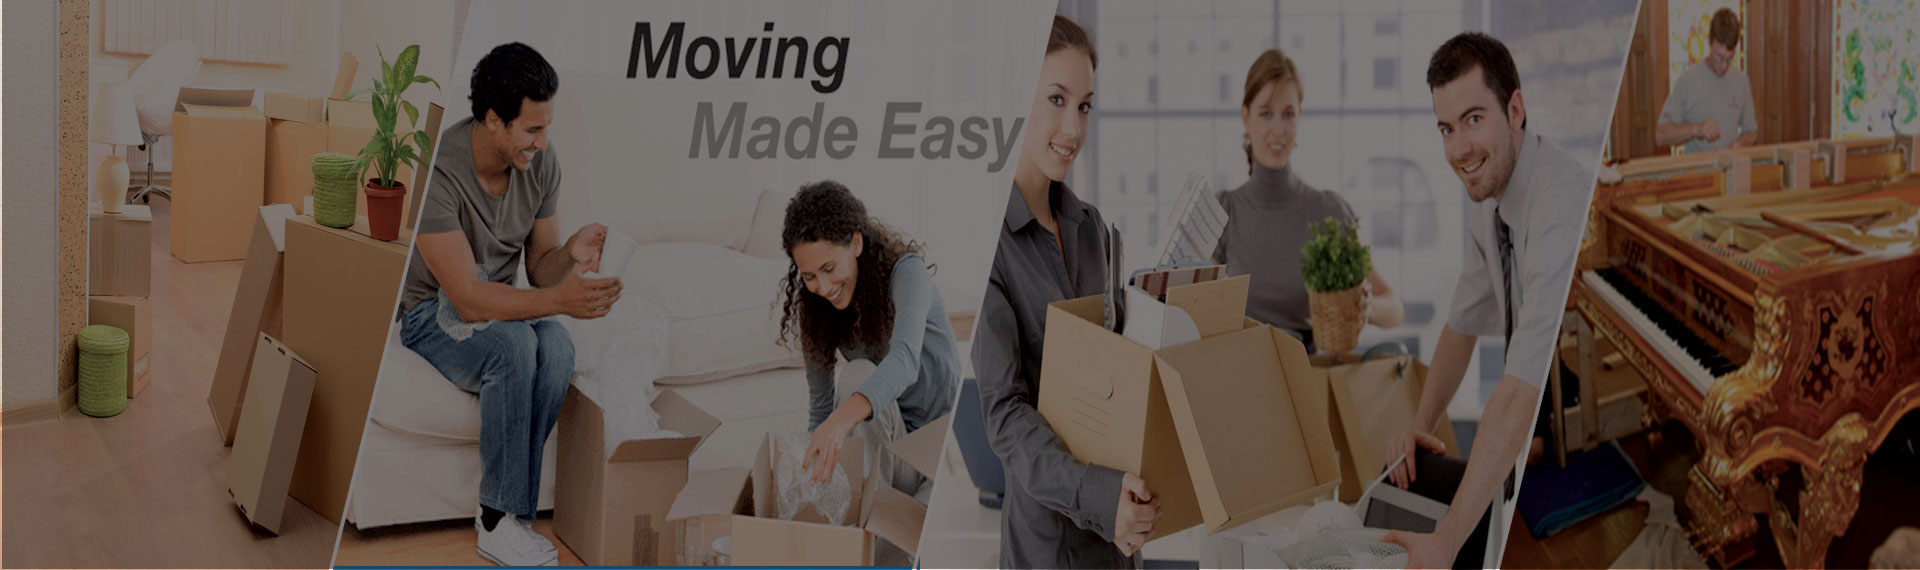 JV Moving Corp Jersey City NJ